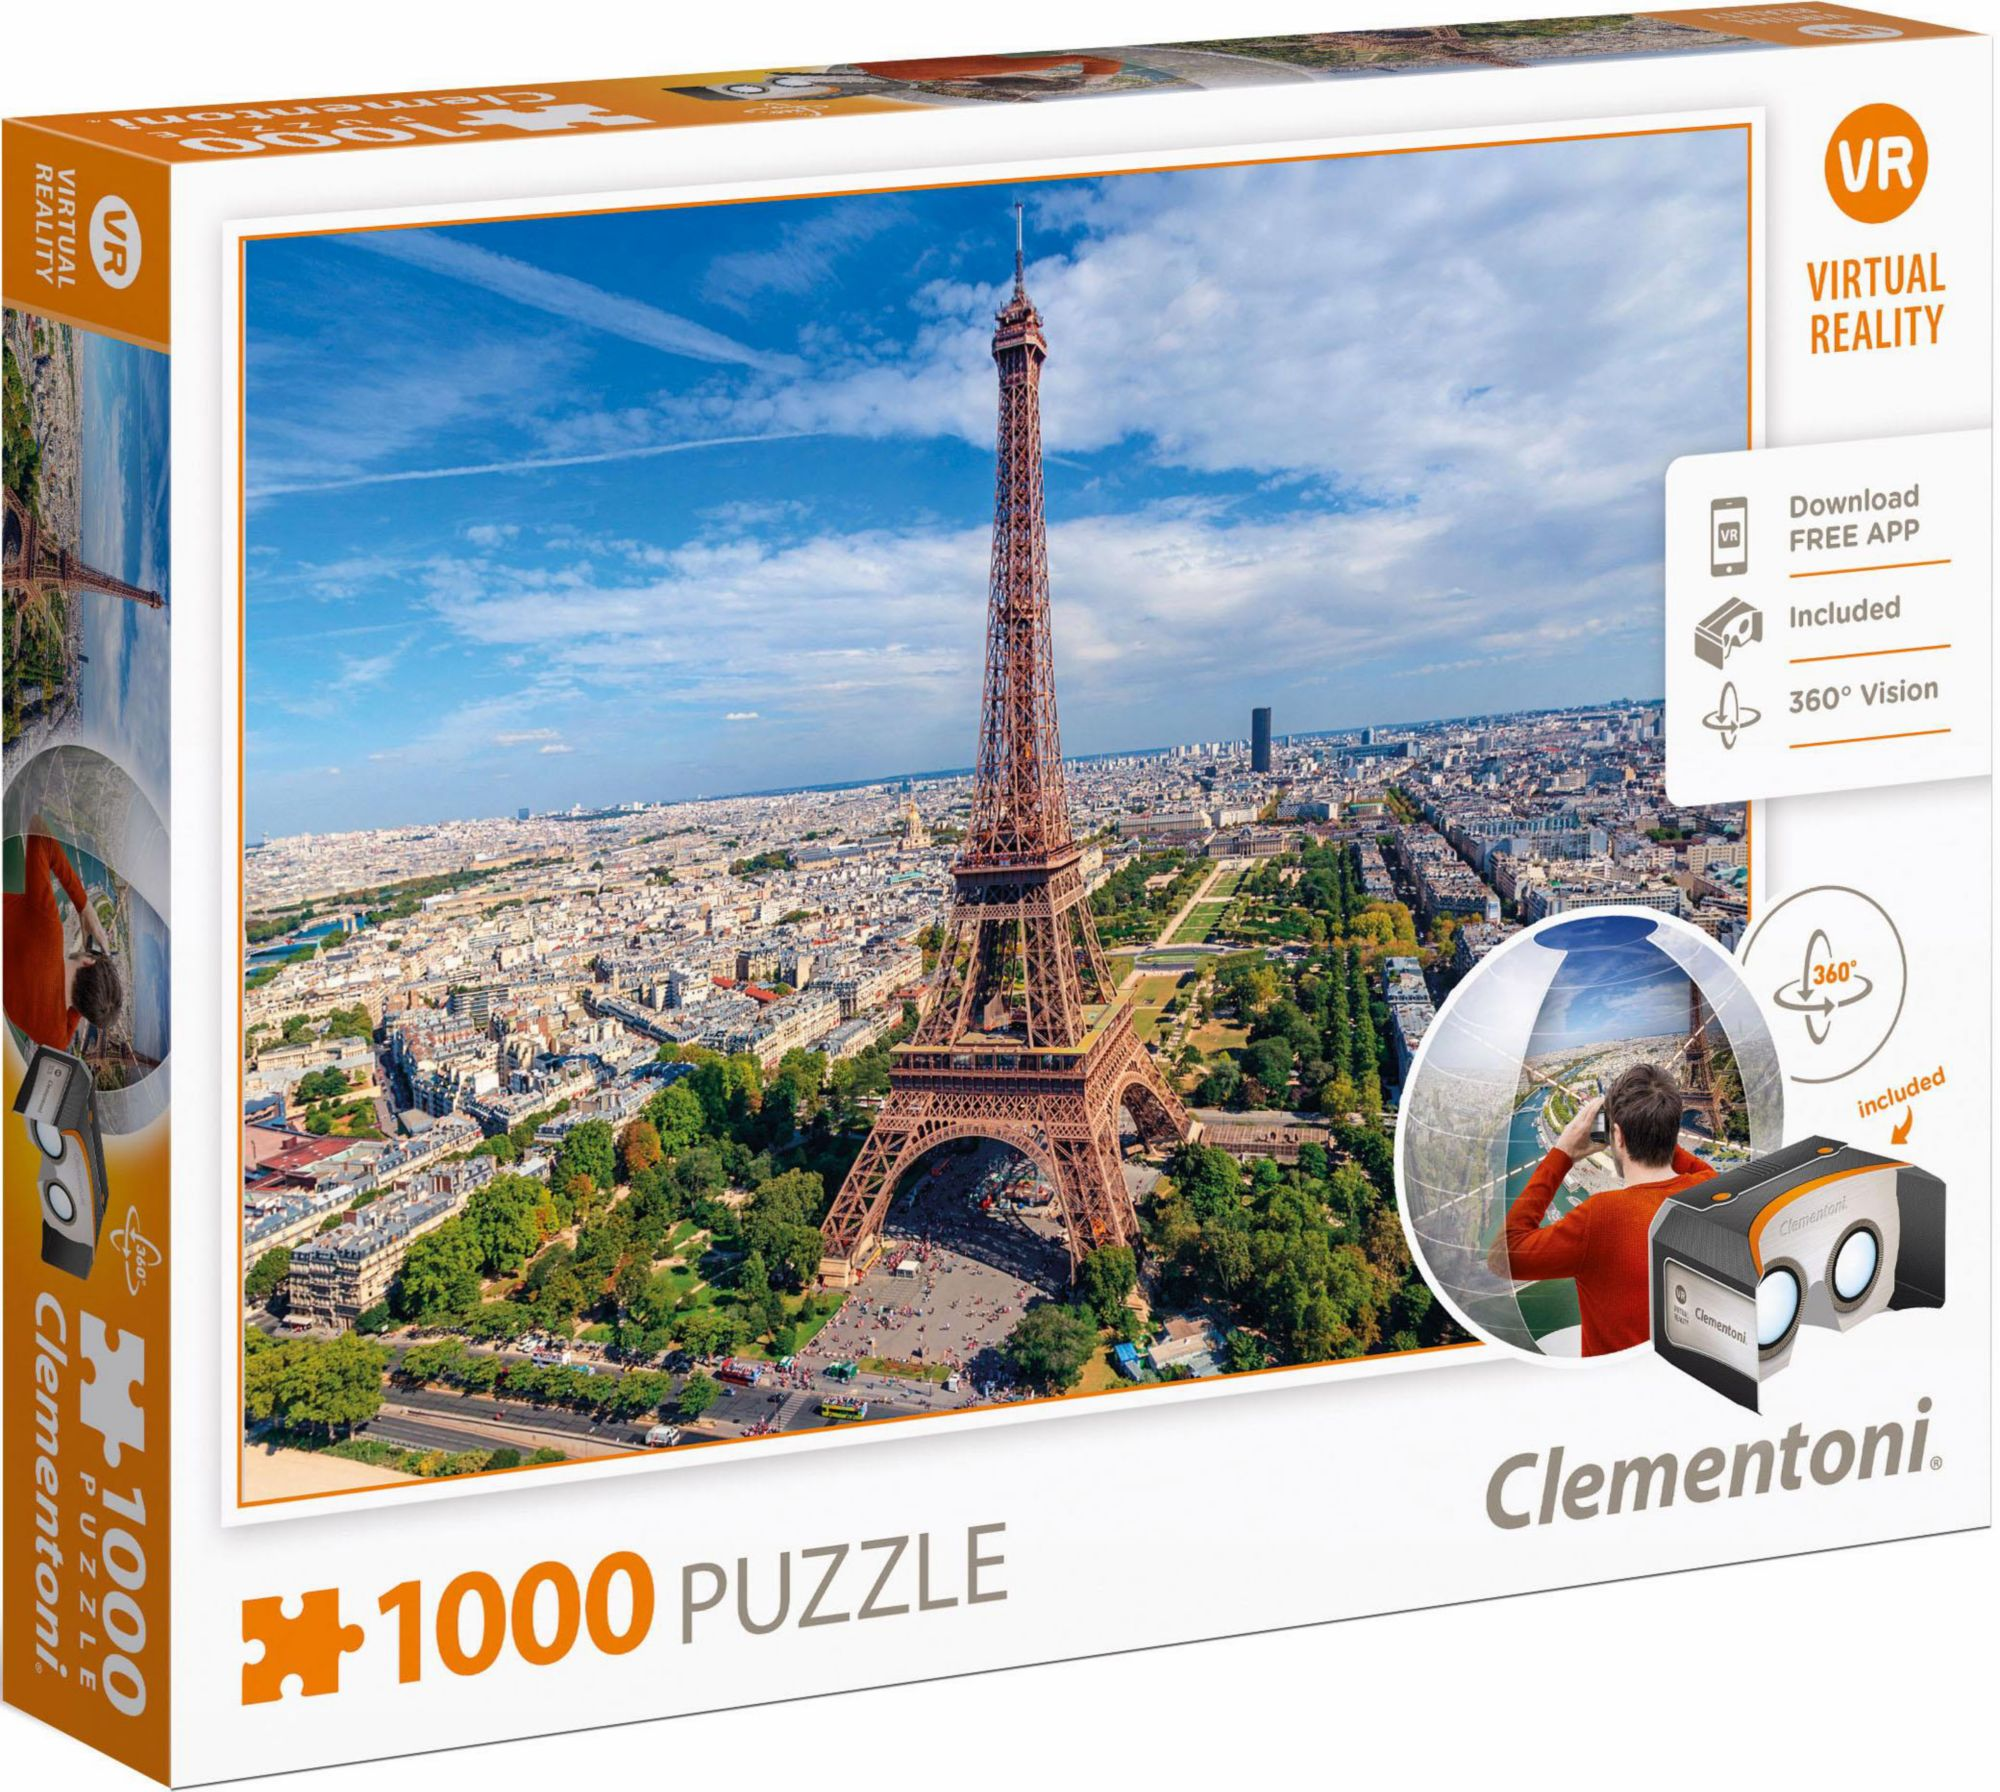 CLEMENTONI Clementoni Puzzle, 1000 Teile, »Paris, Virtual Reality«